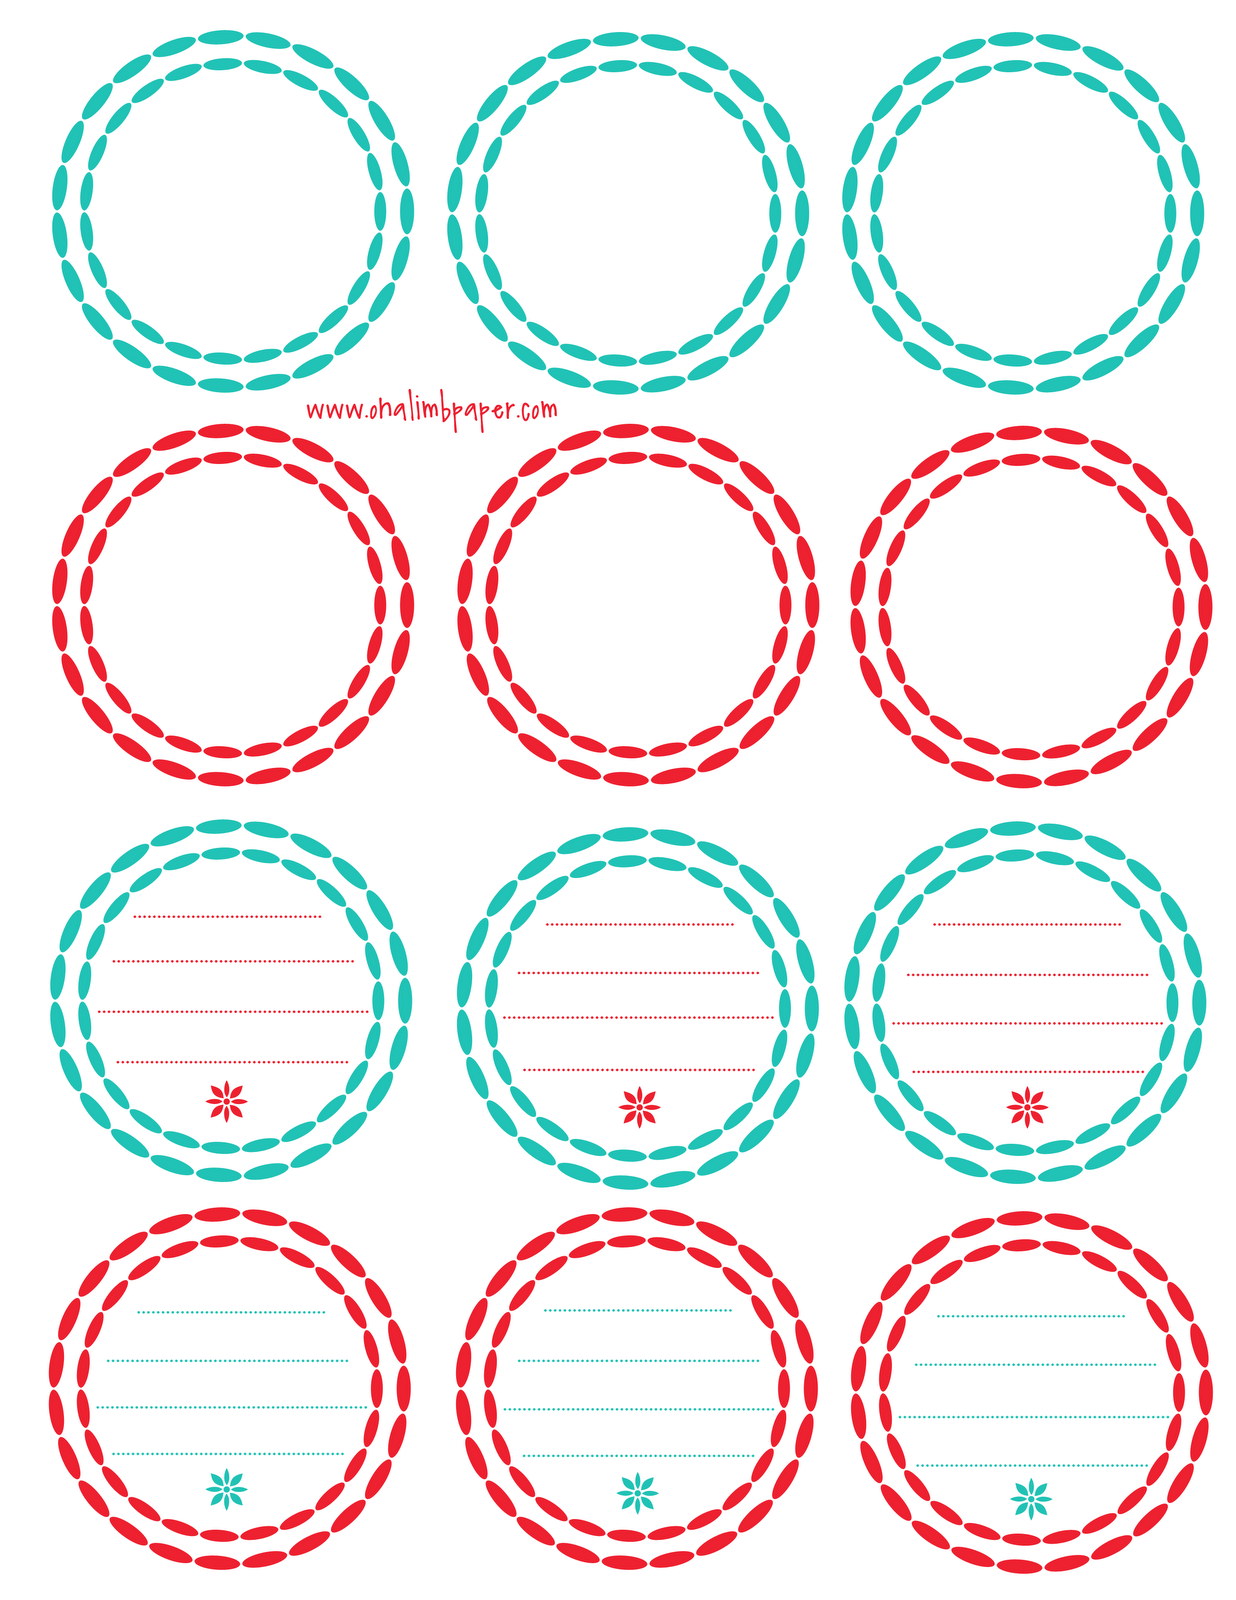 5 Images of Free Printable Round Gift Tags